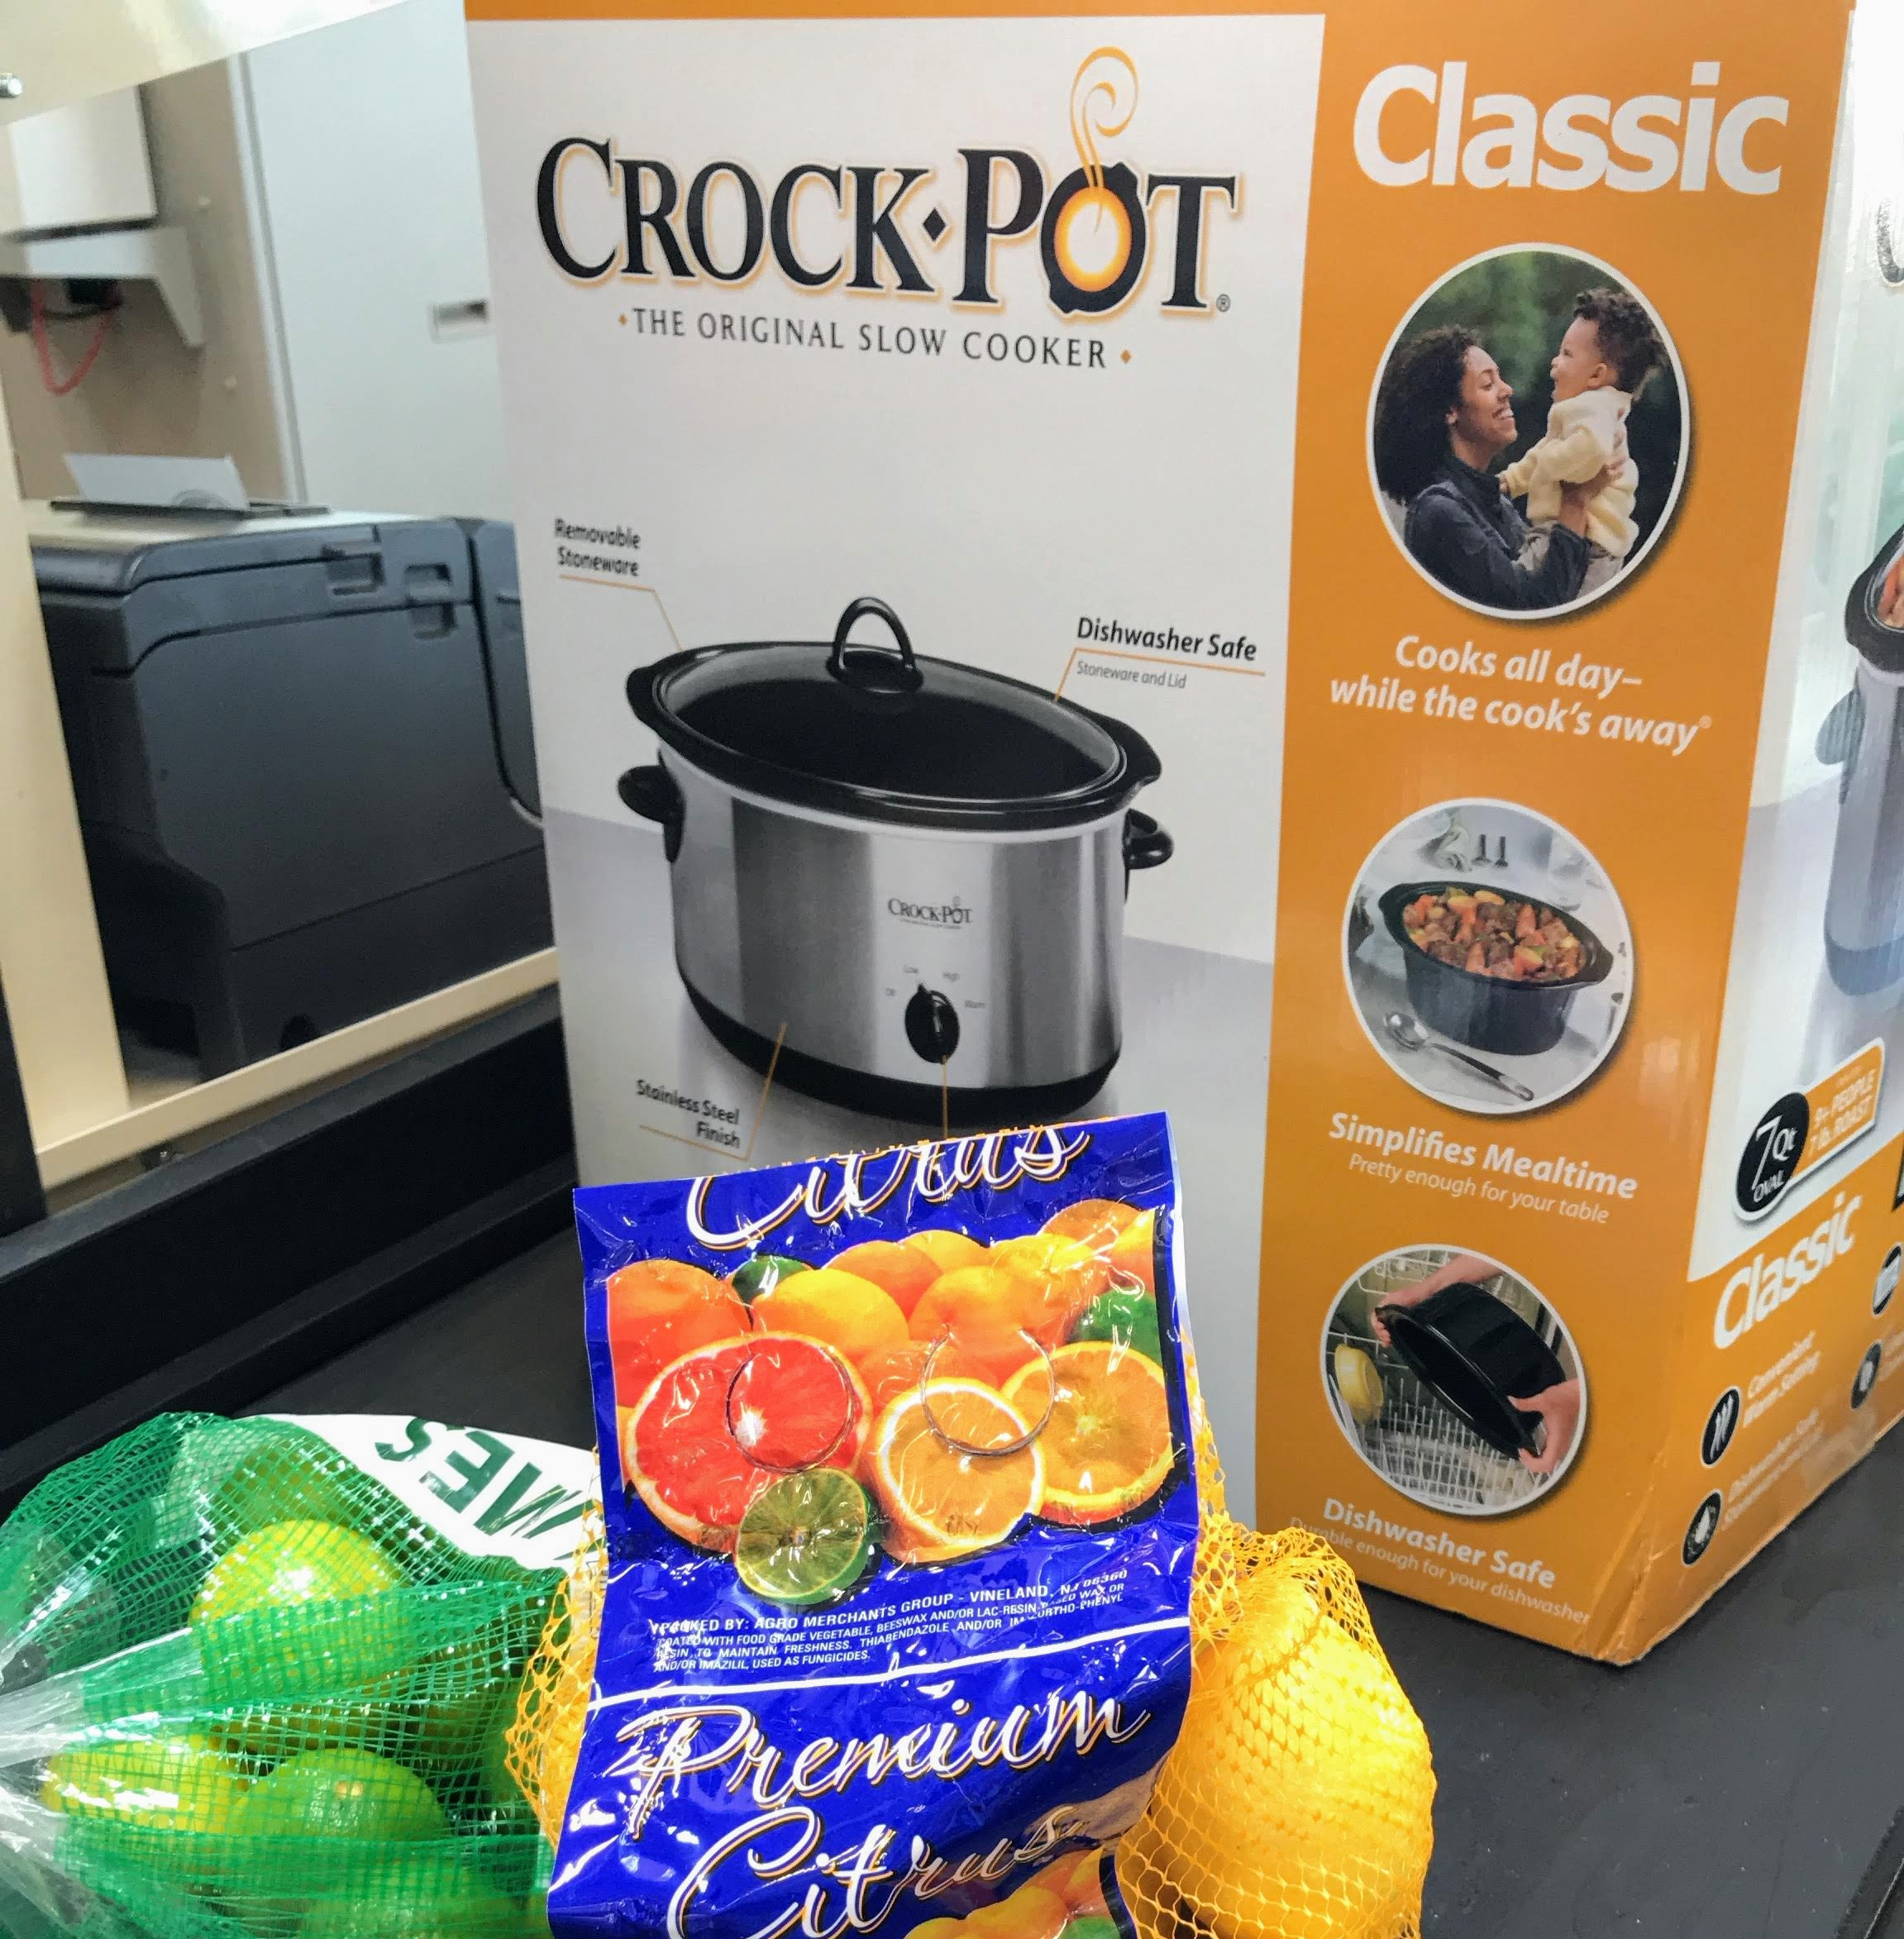 Invest in a crockpot to save time and simplify your life